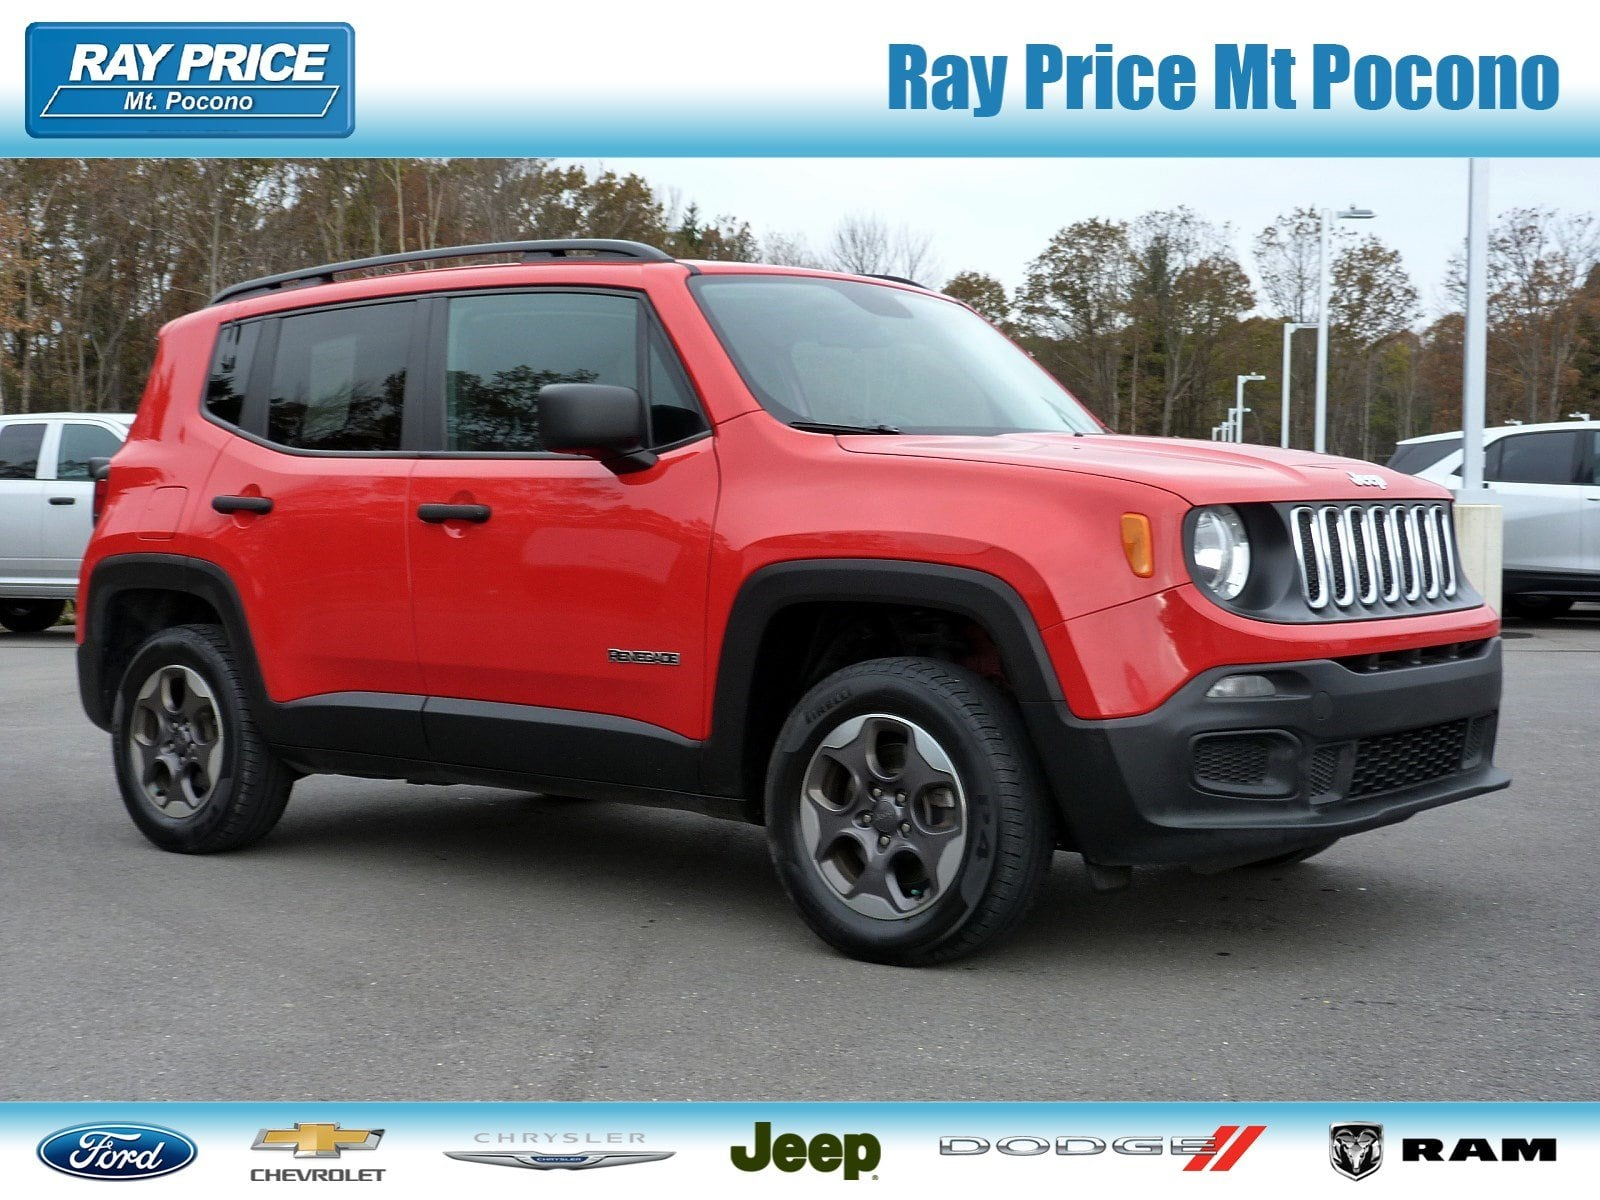 Photo Certified Pre-Owned 2017 Jeep Renegade Sport 4x4 For Sale East Stroudsburg, PA